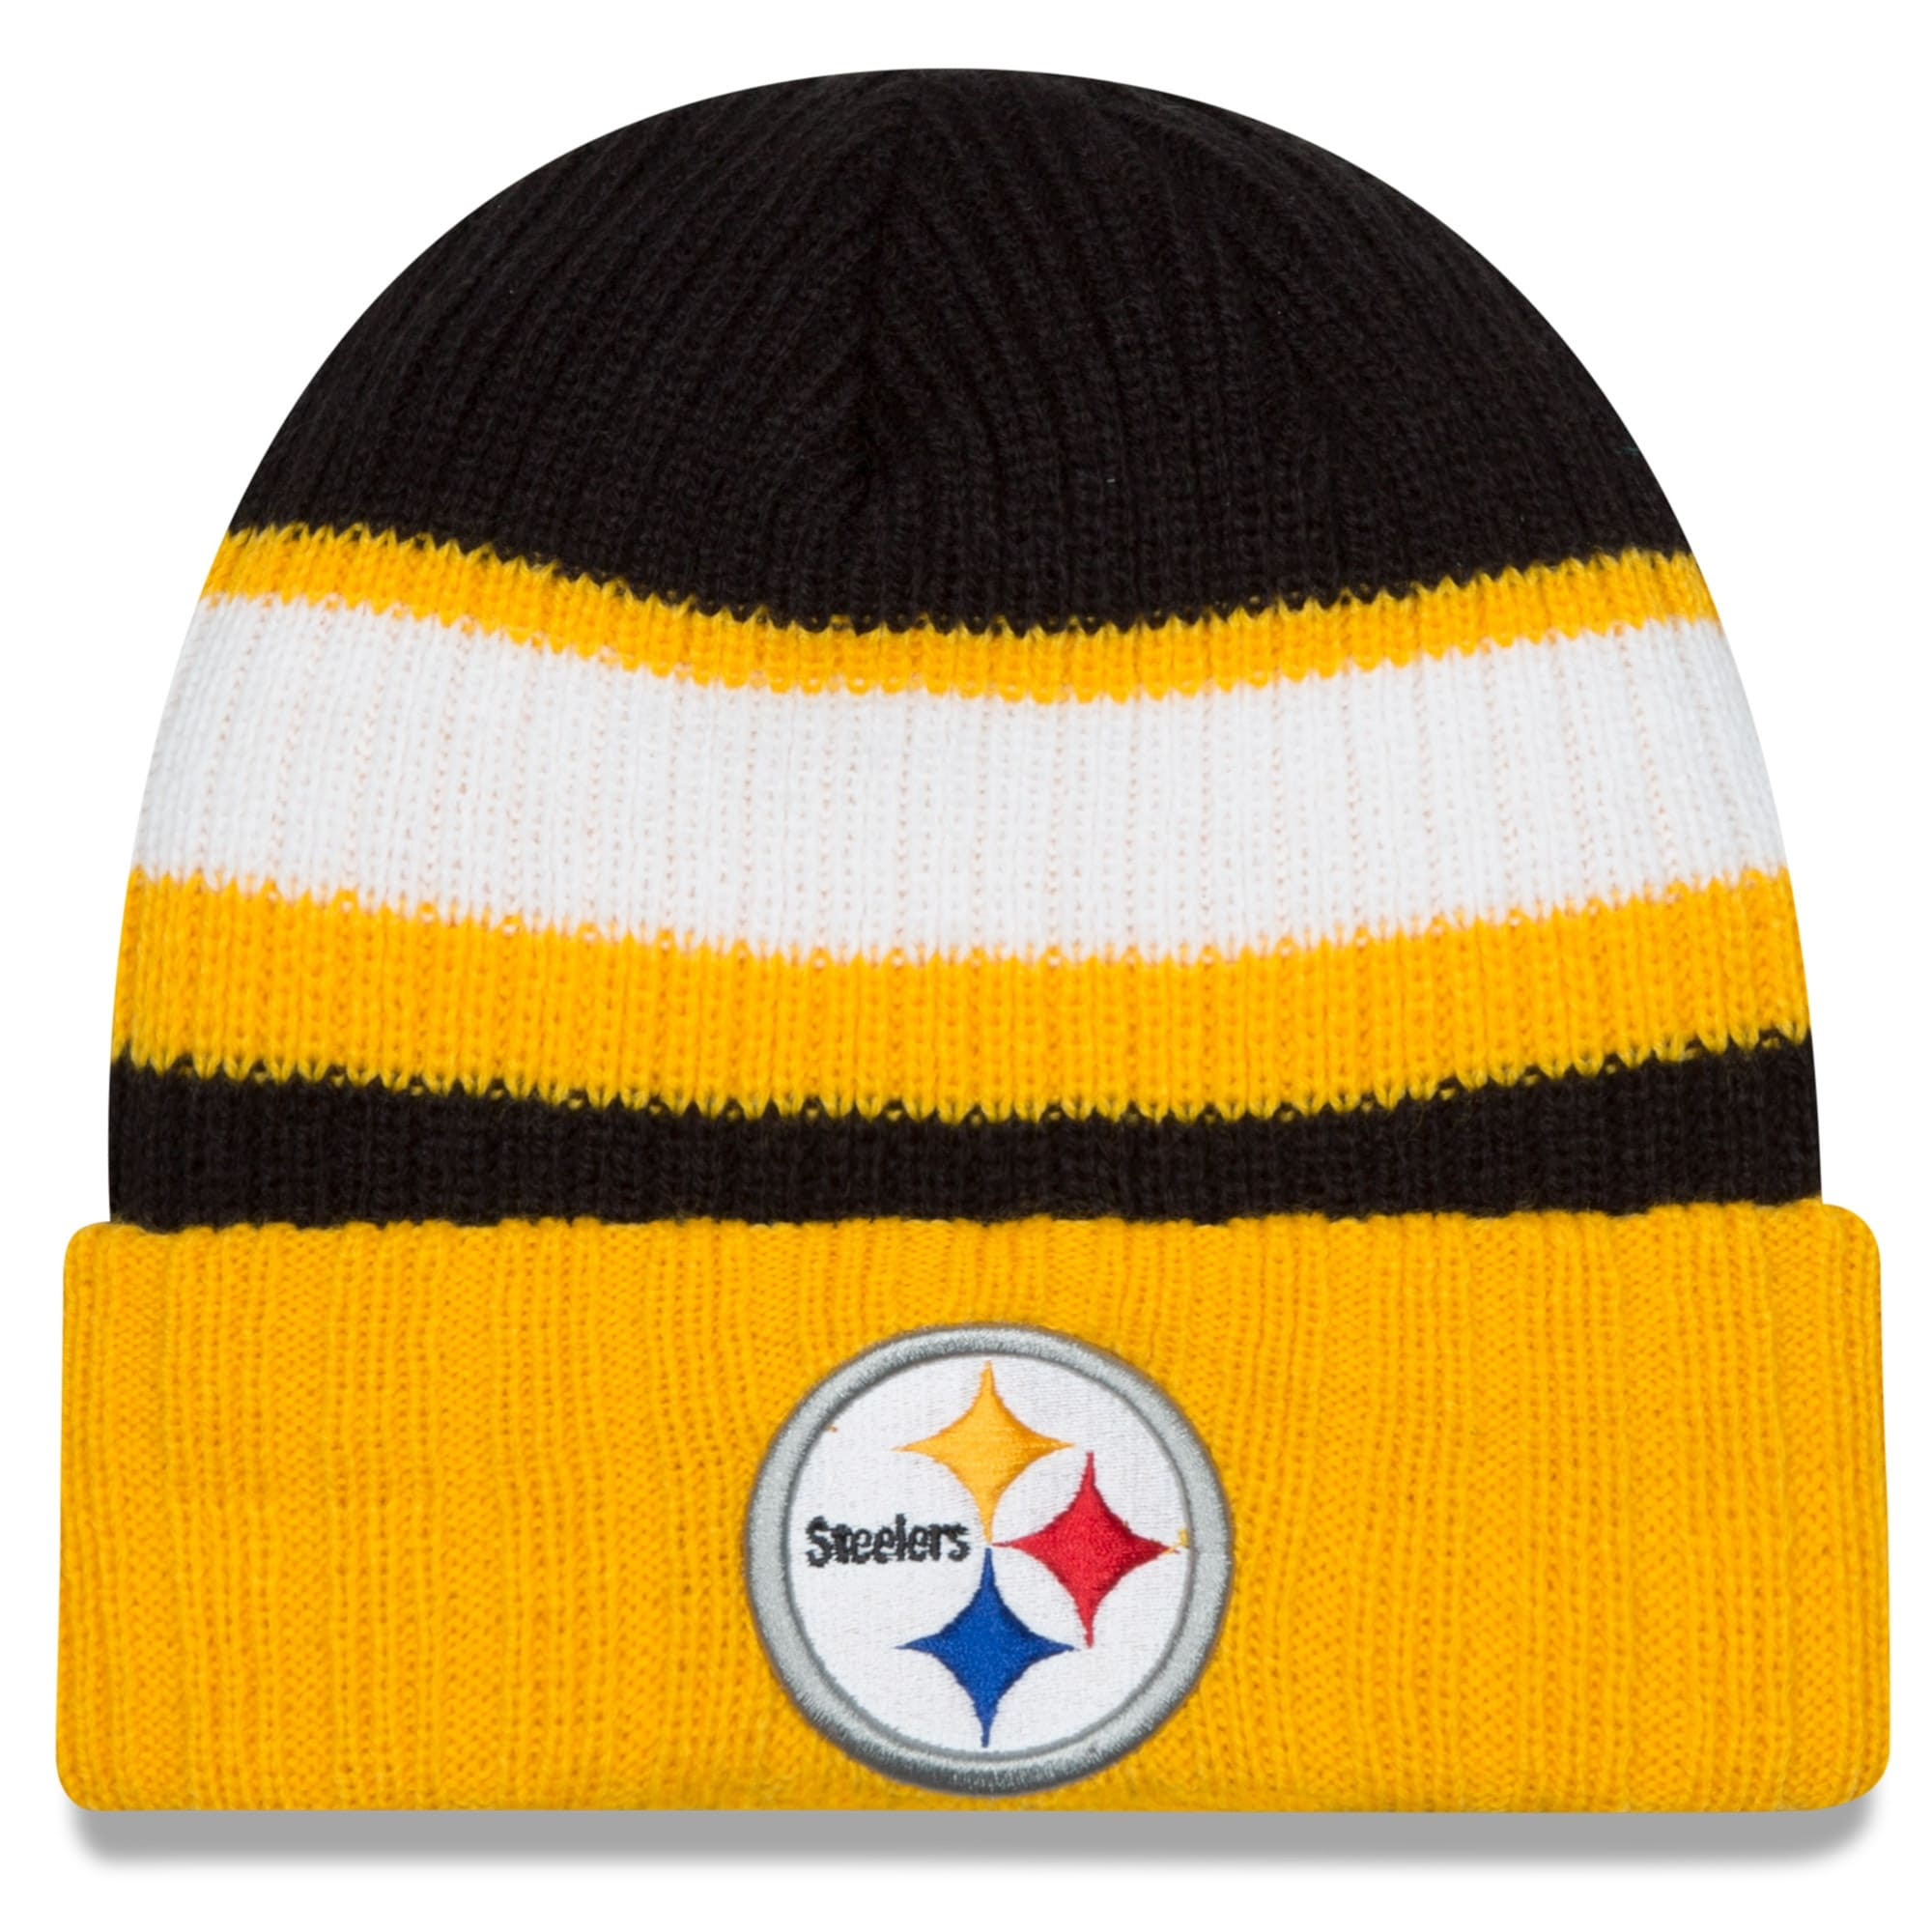 Pittsburgh Steelers New Era Rib Start Cuffed Knit Hat -